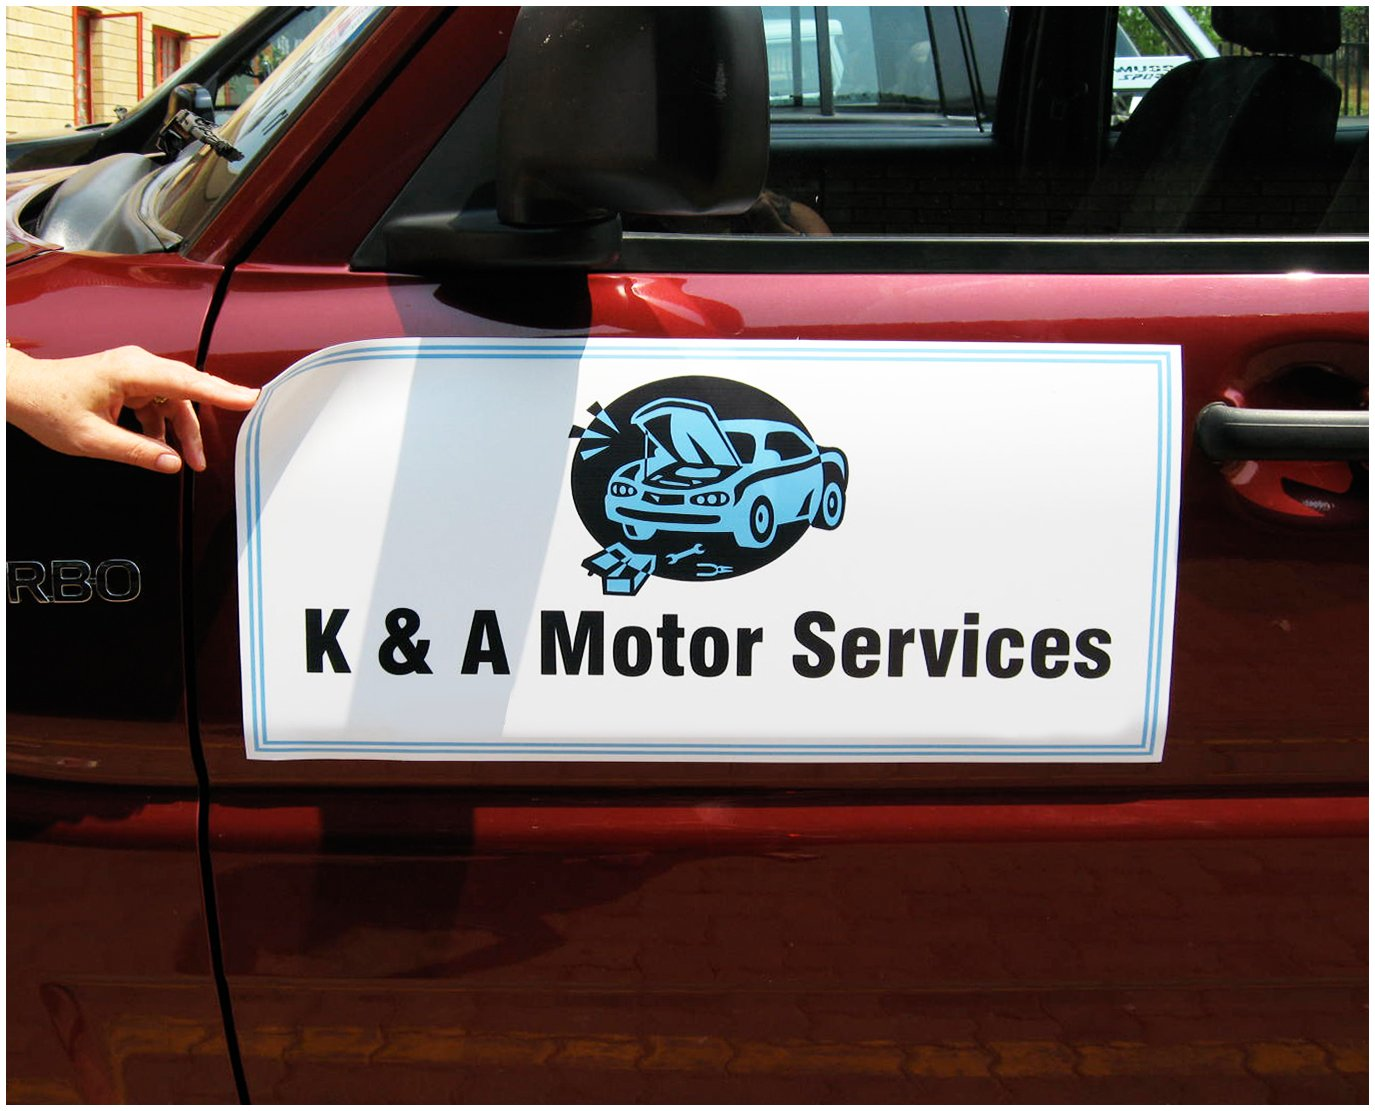 Truck Door Magnetic Signs - Custom car magnet advertisingcar door magnet advertising business magnets for cars car